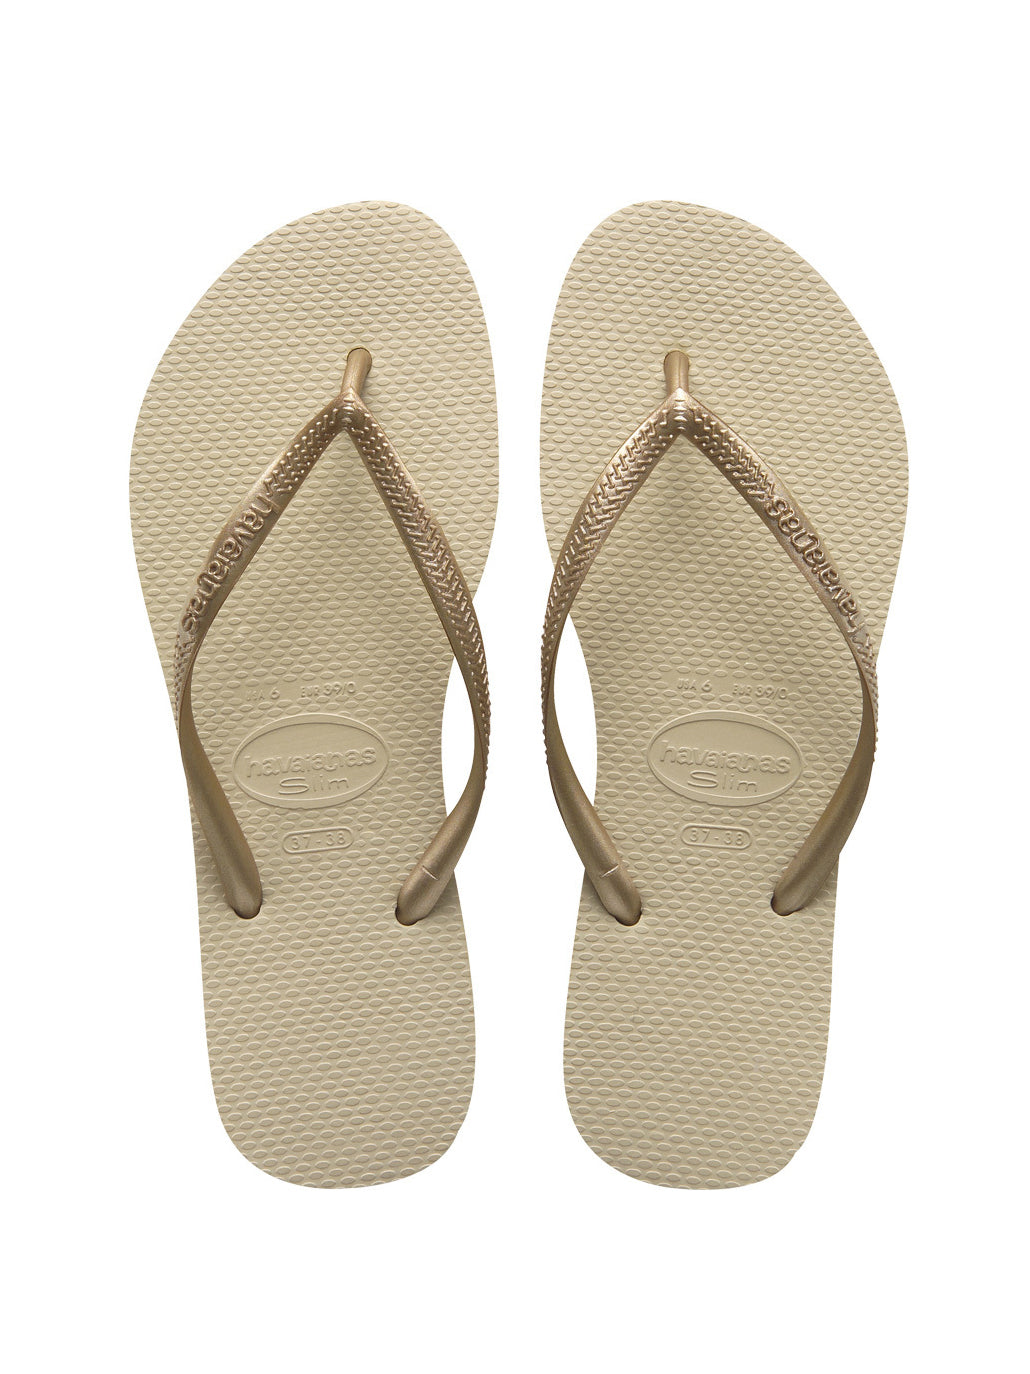 Havaianas Slim Sandals Sand Grey/Gold